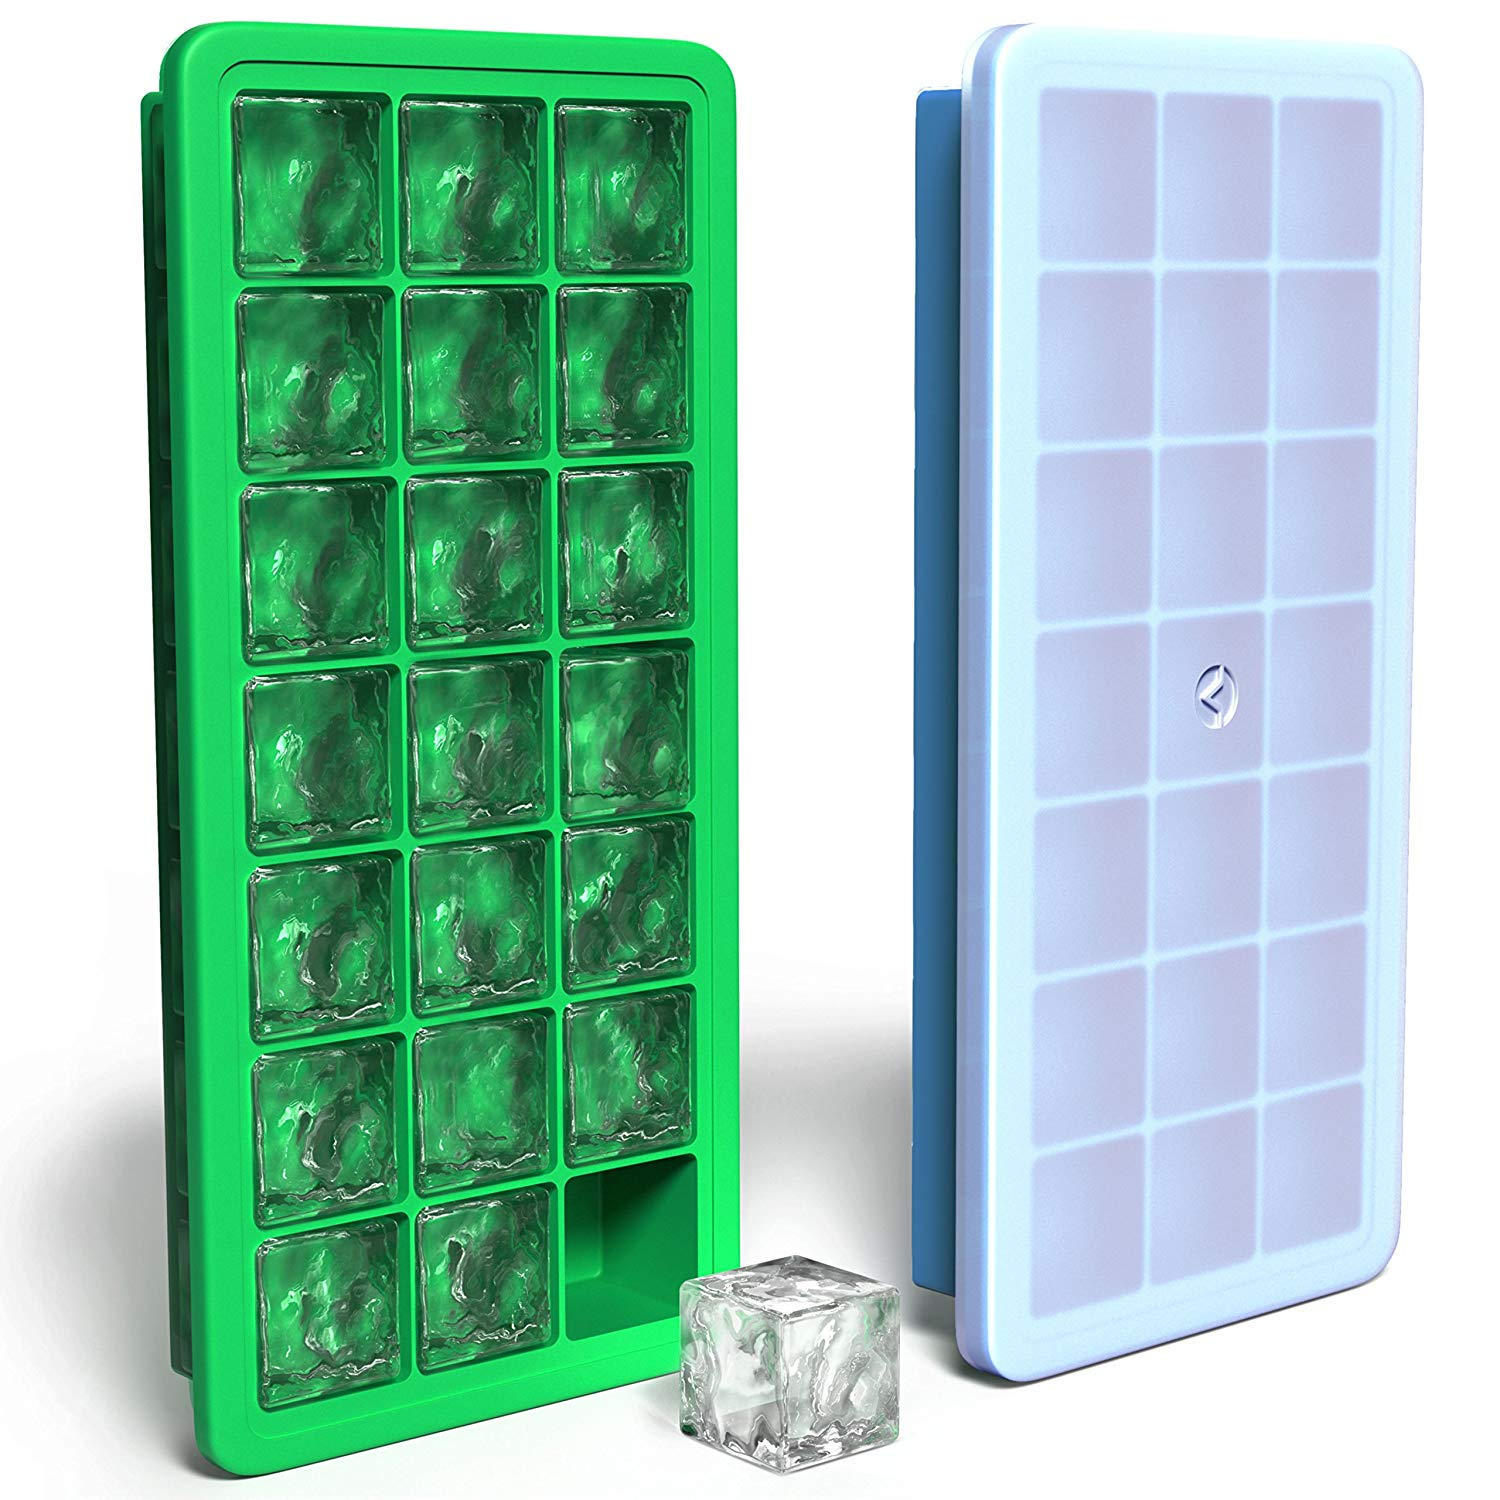 3 x CLEAR PLASTIC ICE CUBE MAKER TRAY ICE TRAY TOTAL 42 CUBES PACK OF 3